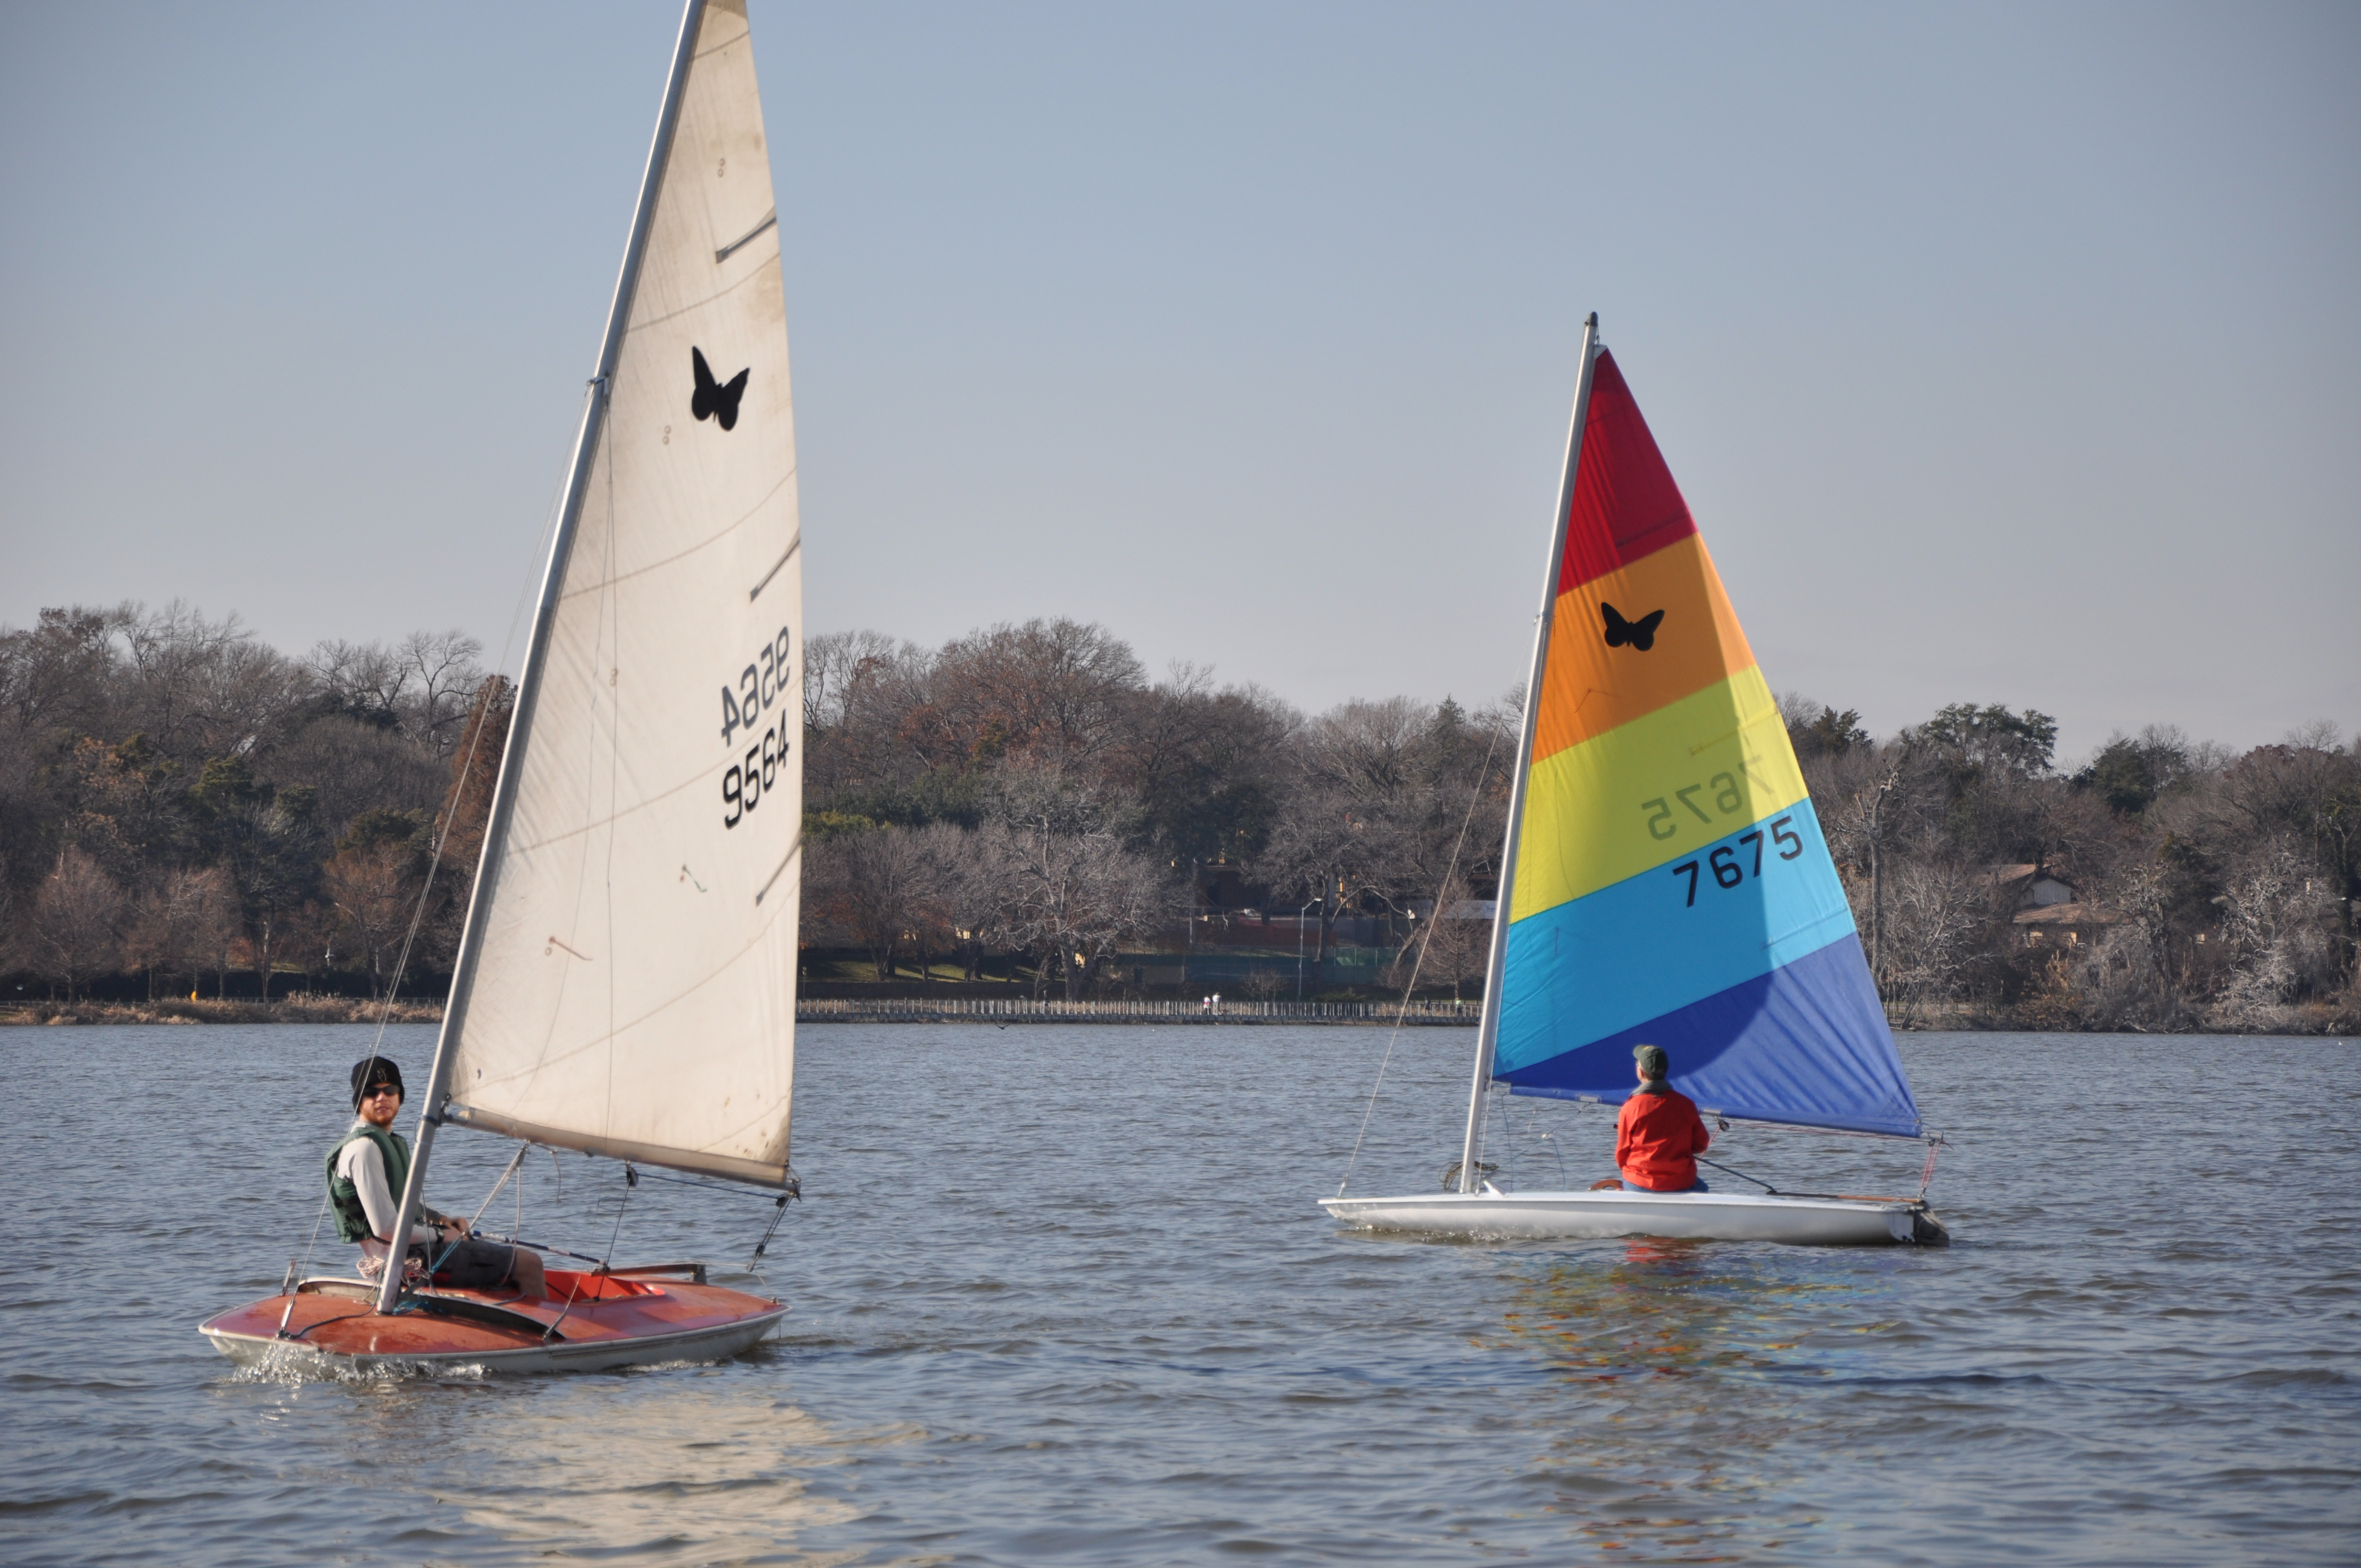 White Rock Boat Club | Sailing at White Rock Lake in Dallas